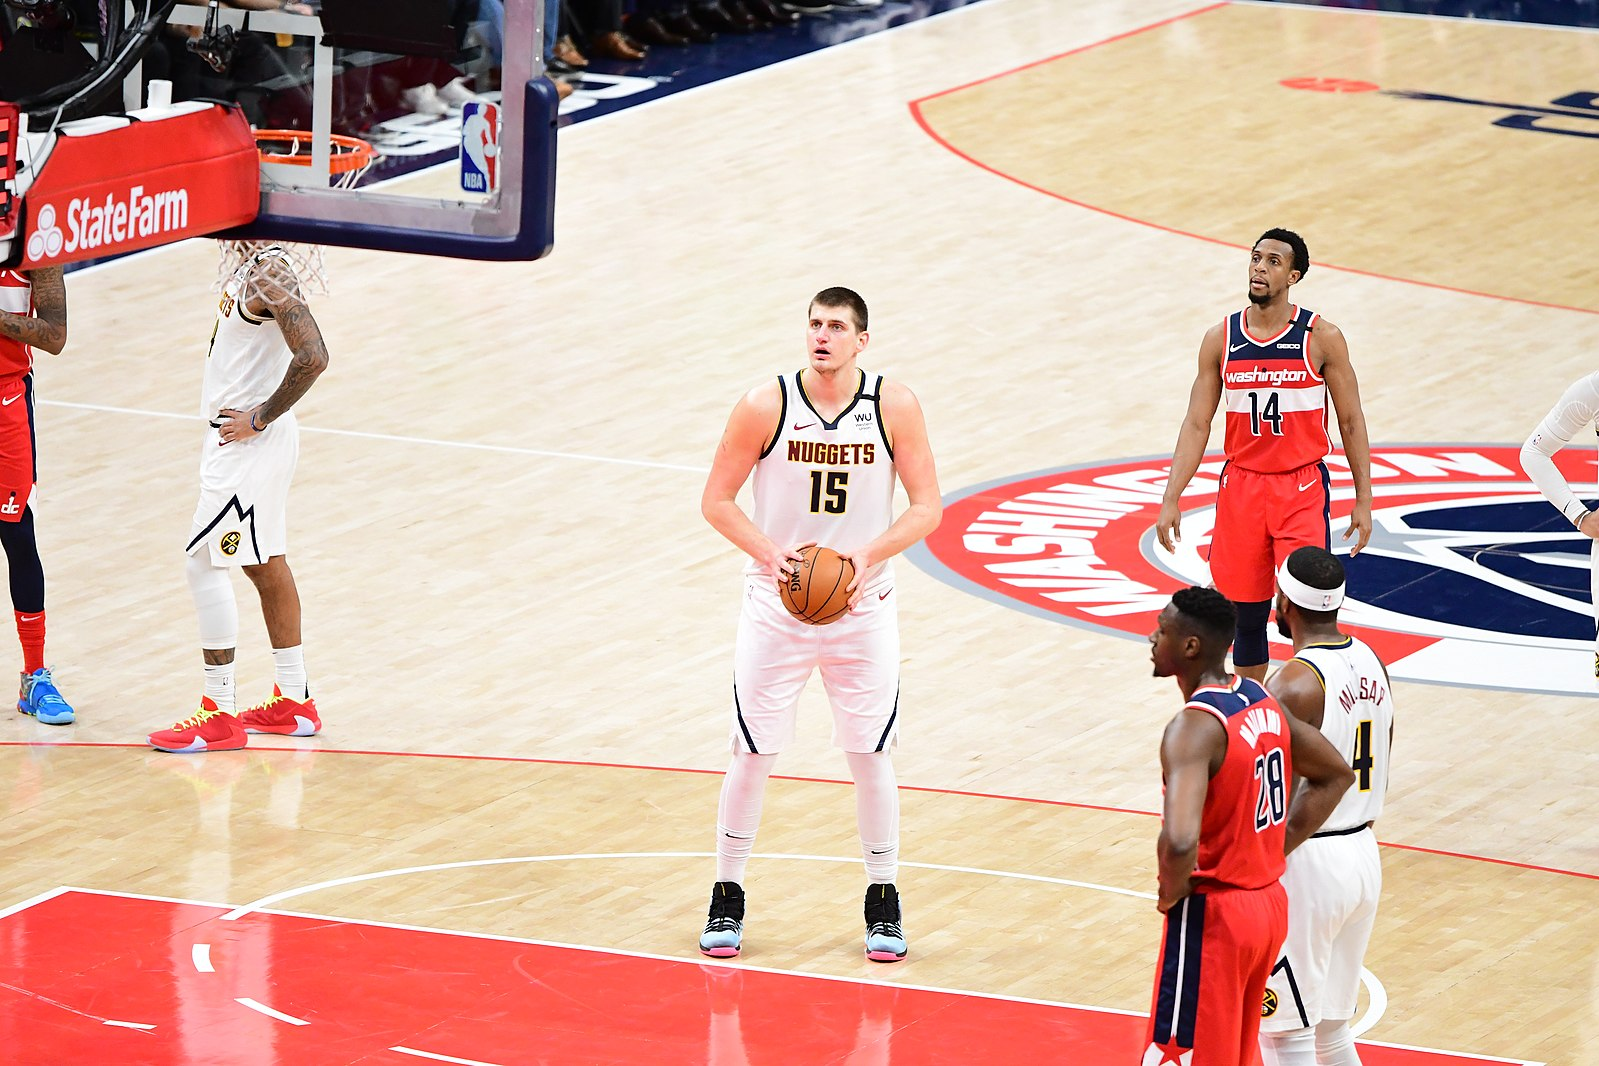 1599px-Nikola_Jokic_free_throw